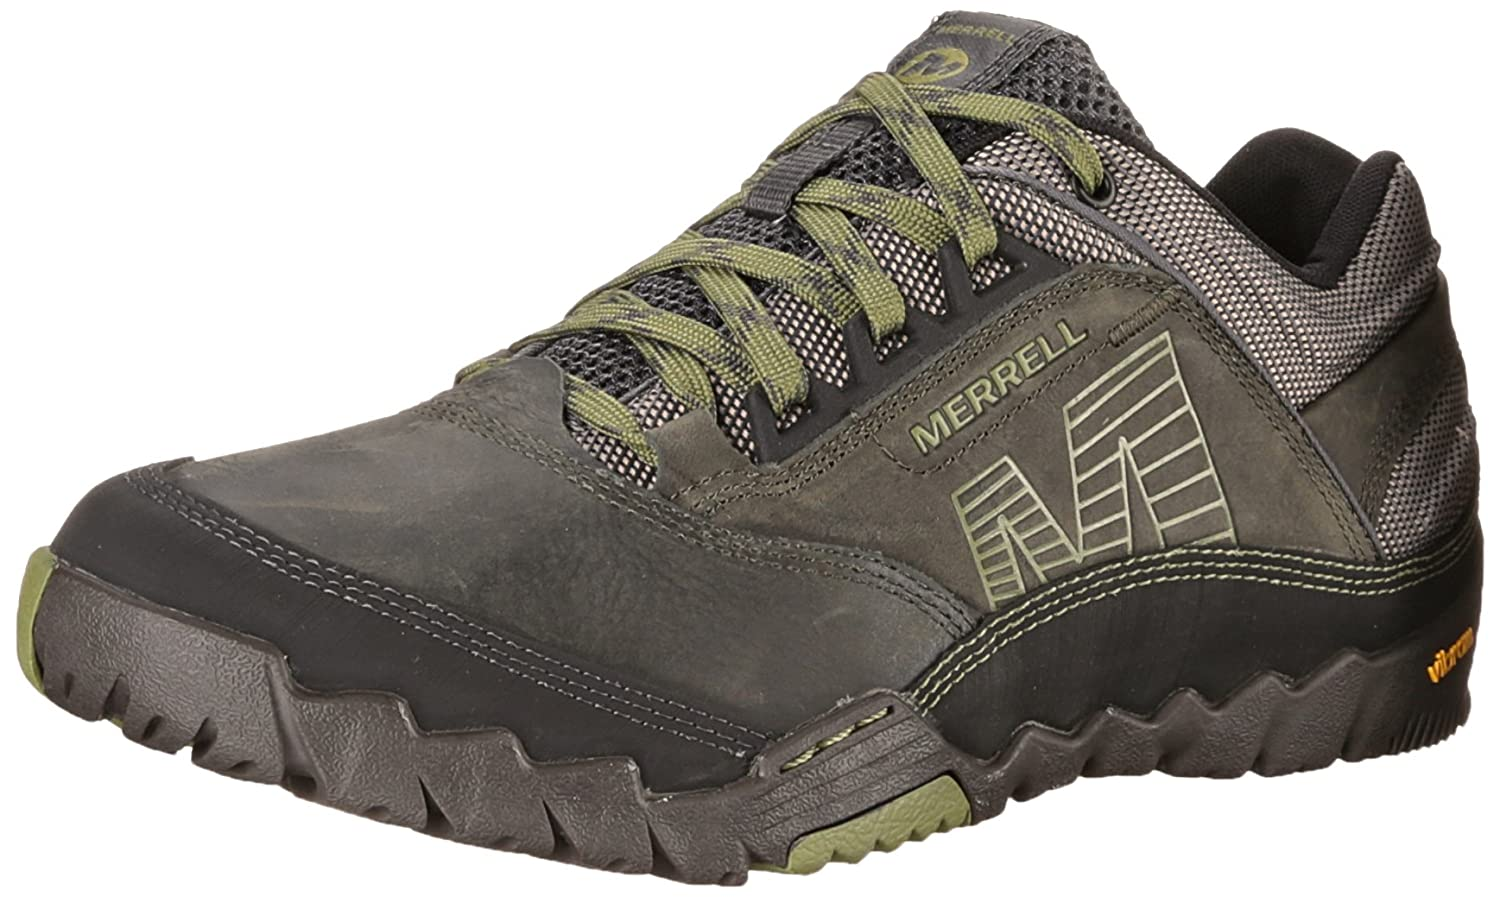 Merrell Men's Annex Hiking Shoe